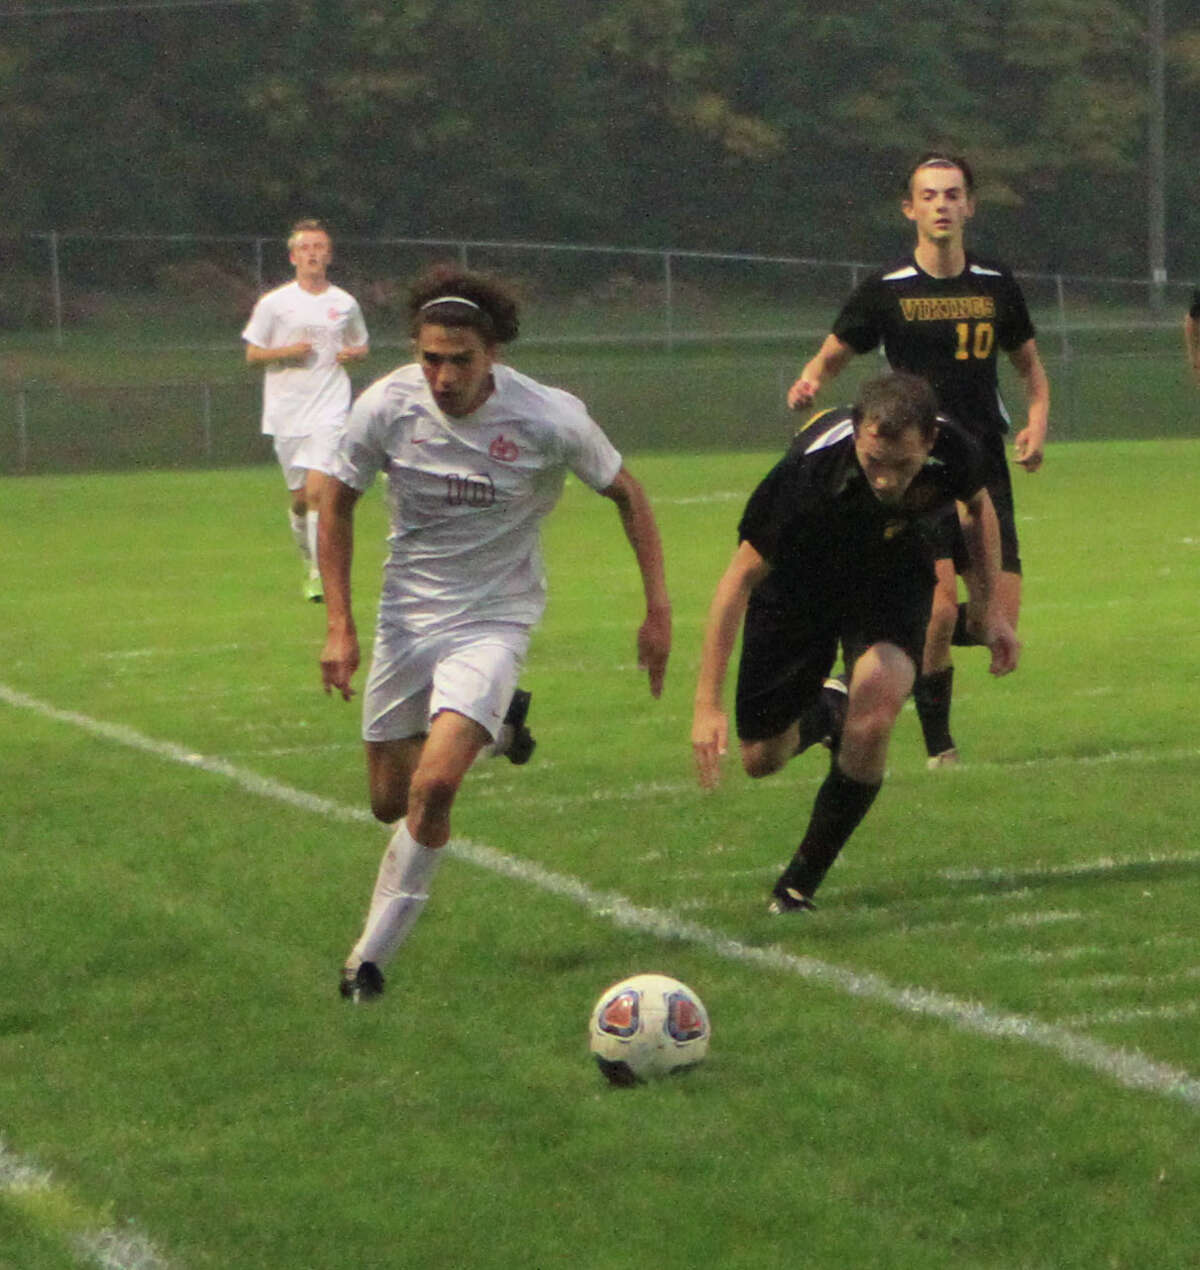 The Big Rapids soccer team was defeated by Tri County on Thursday evening in the second round of the CSAA Tournament.